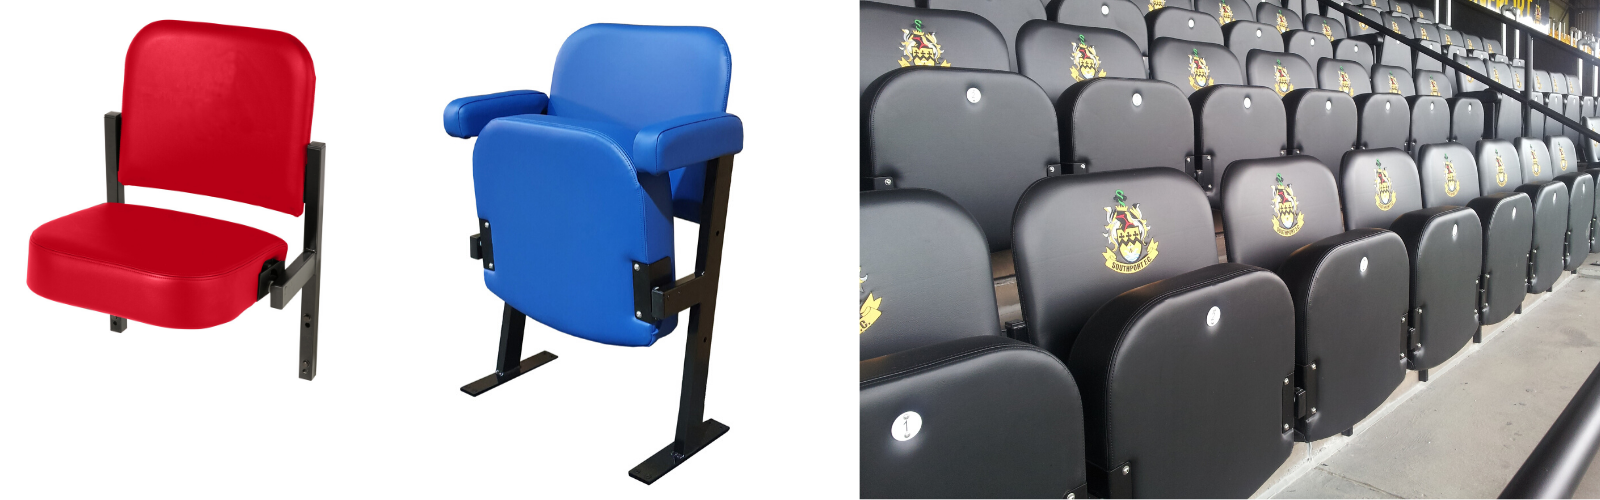 Riser mounted and floor fixed versions of Evertaut's Club premium stadium seating and an installation at Southport FC